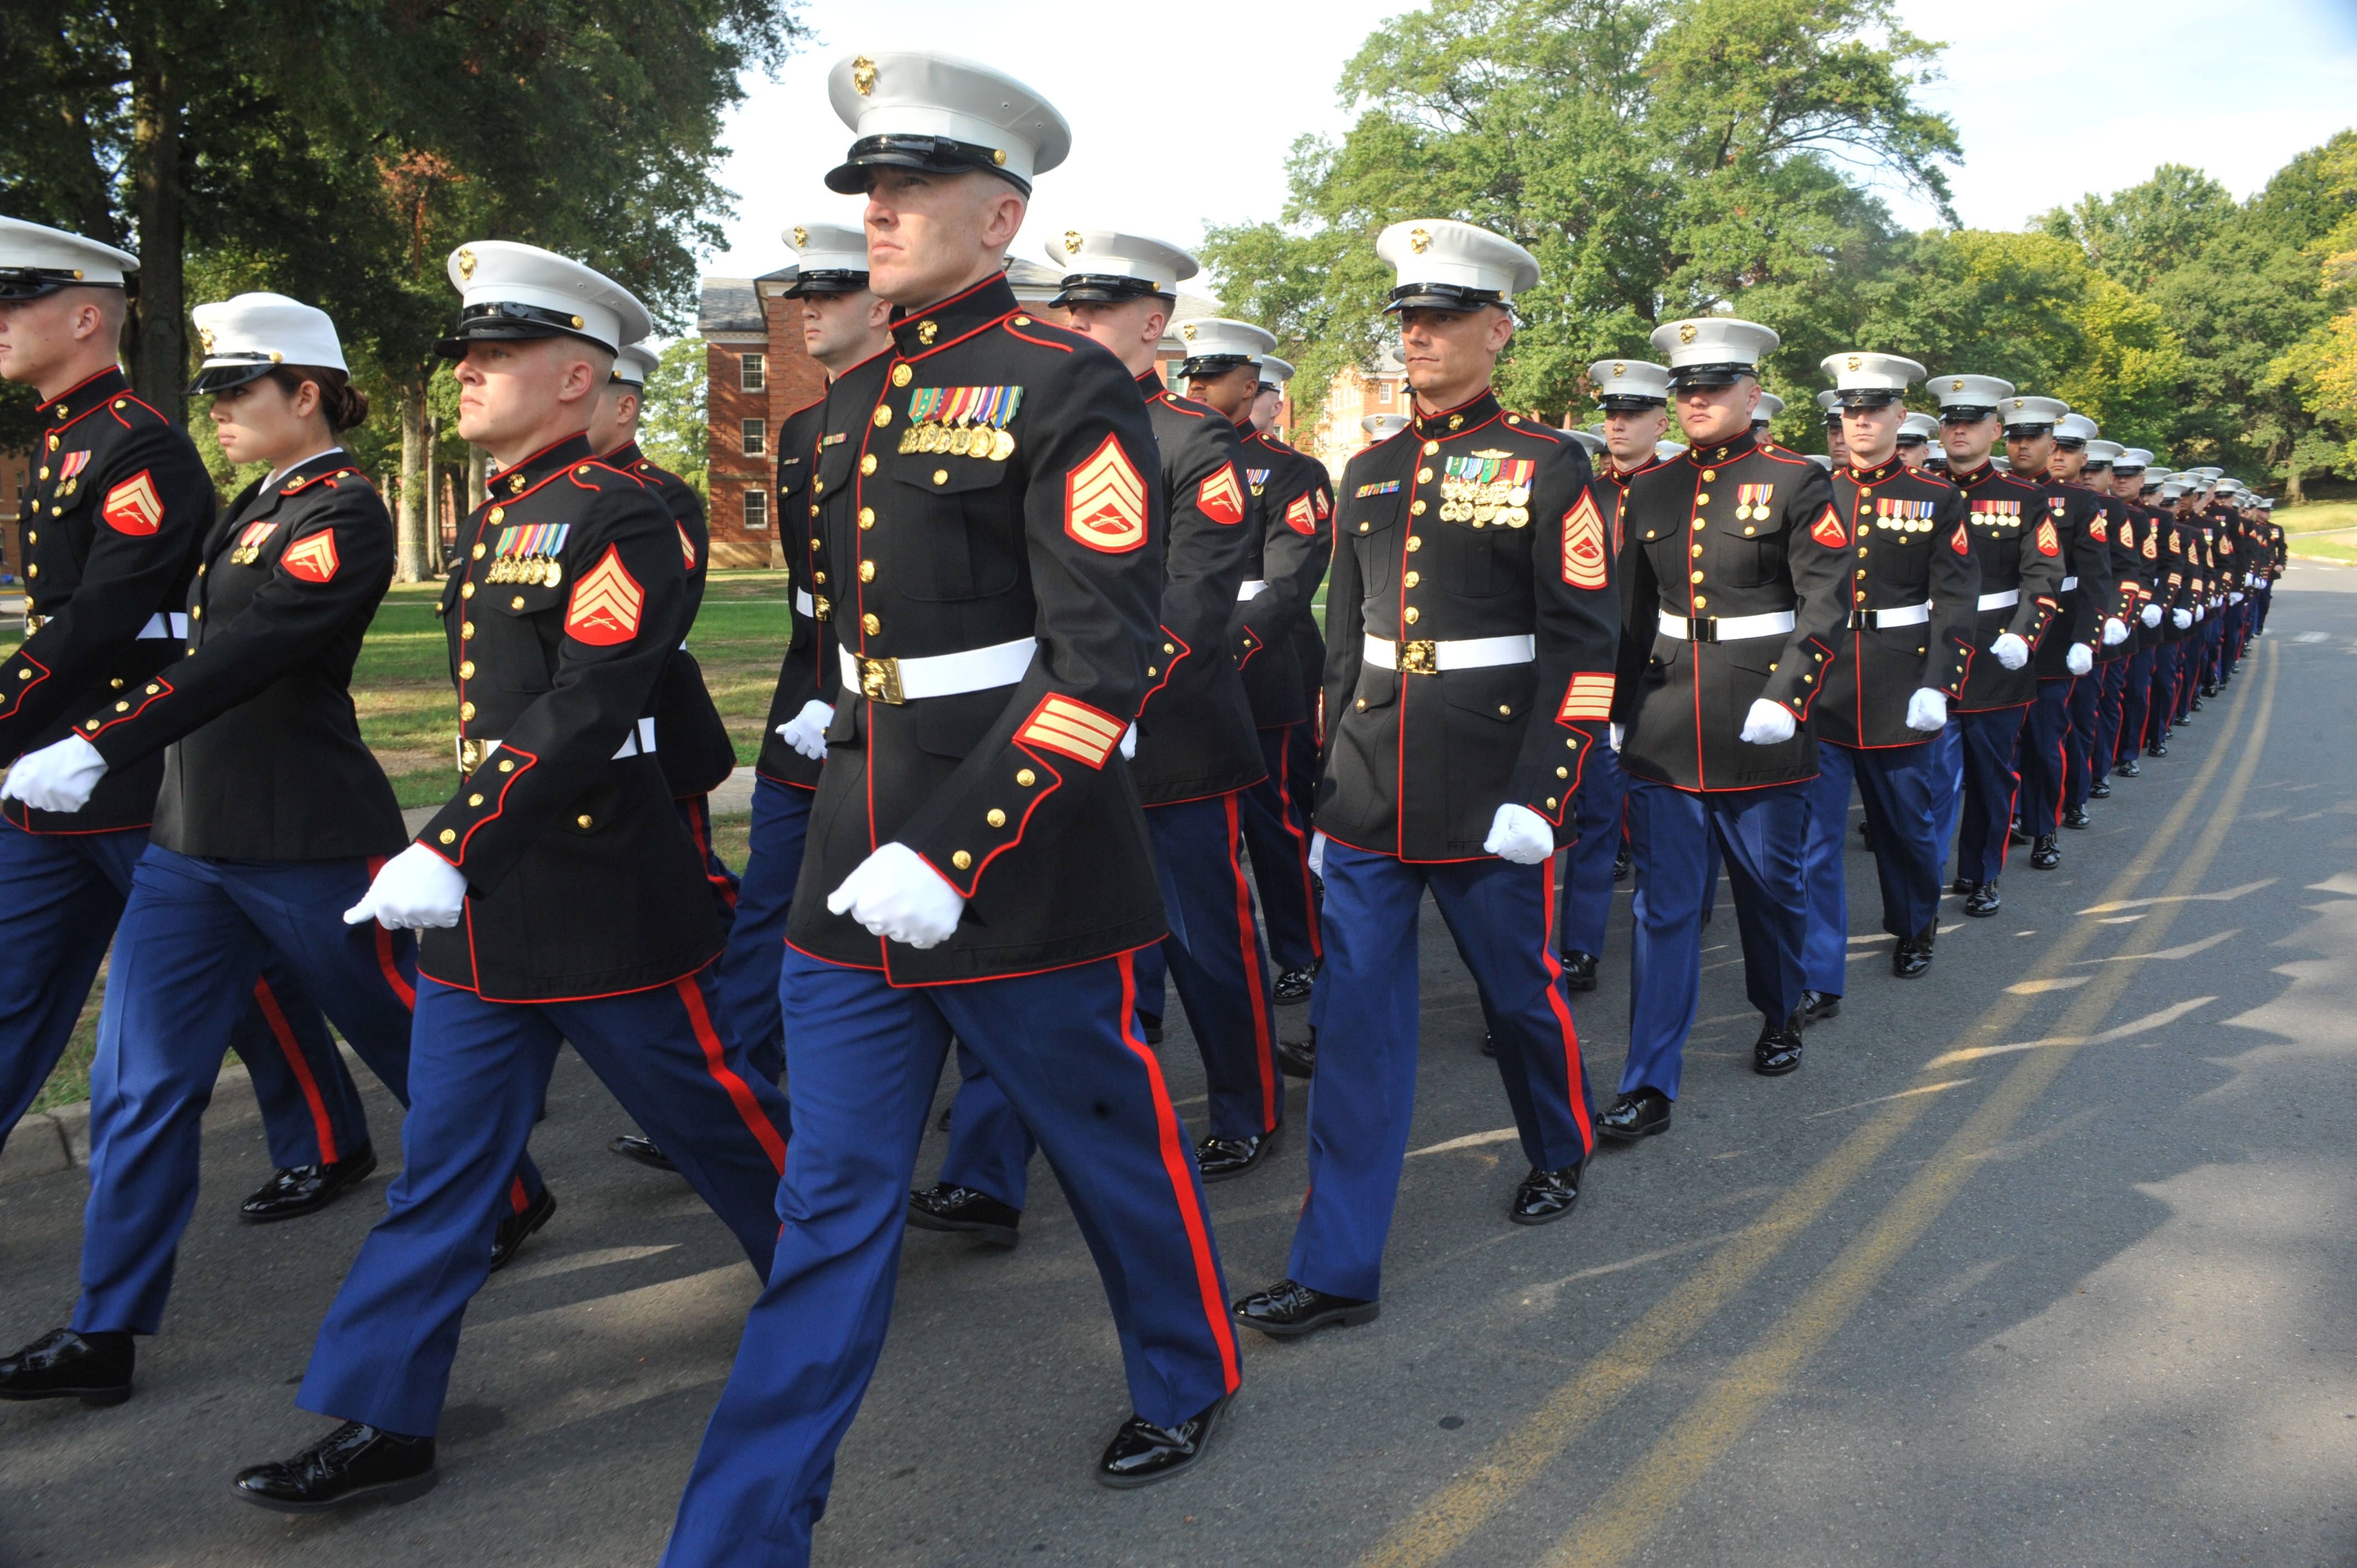 About 40 Marines sent to reinforce embassy in South Sudan